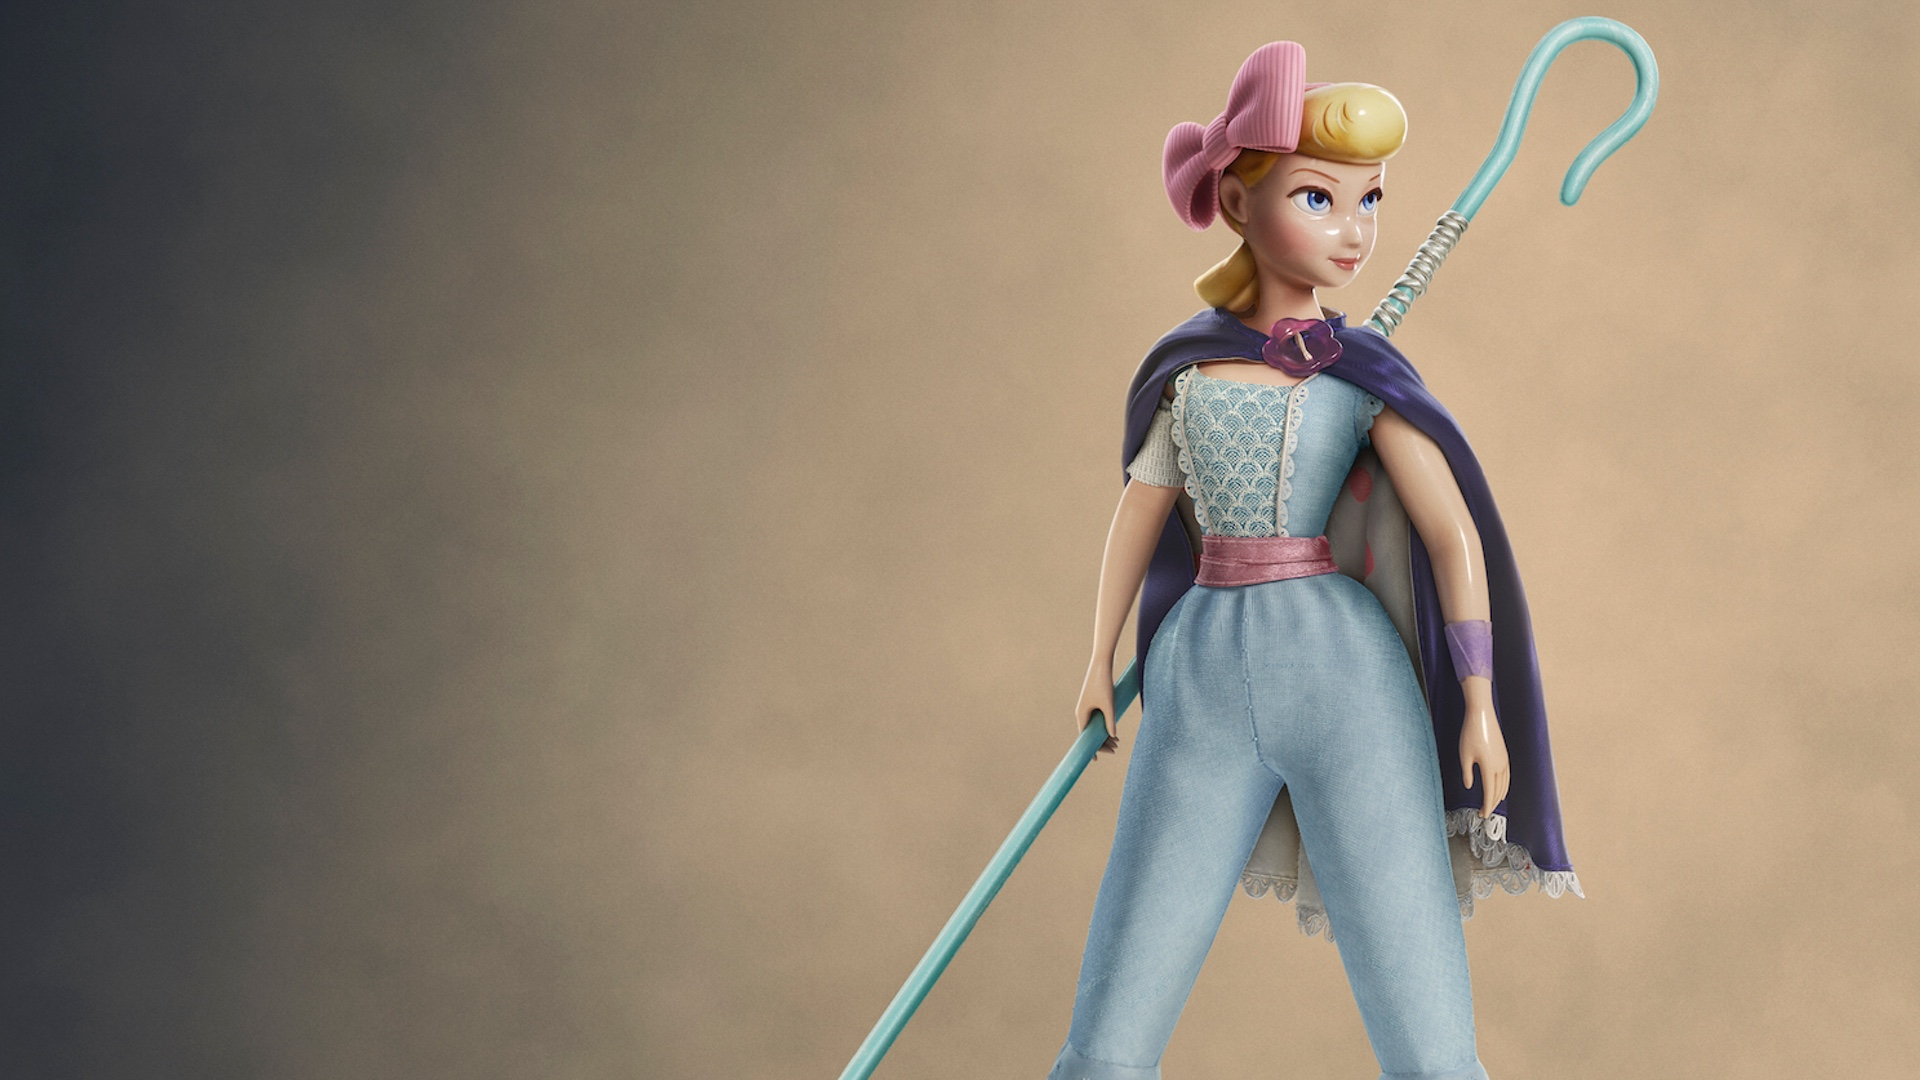 bo-peep-is-back-in-this-new-teaser-and-poster-for-toy-story-4-social.jpg